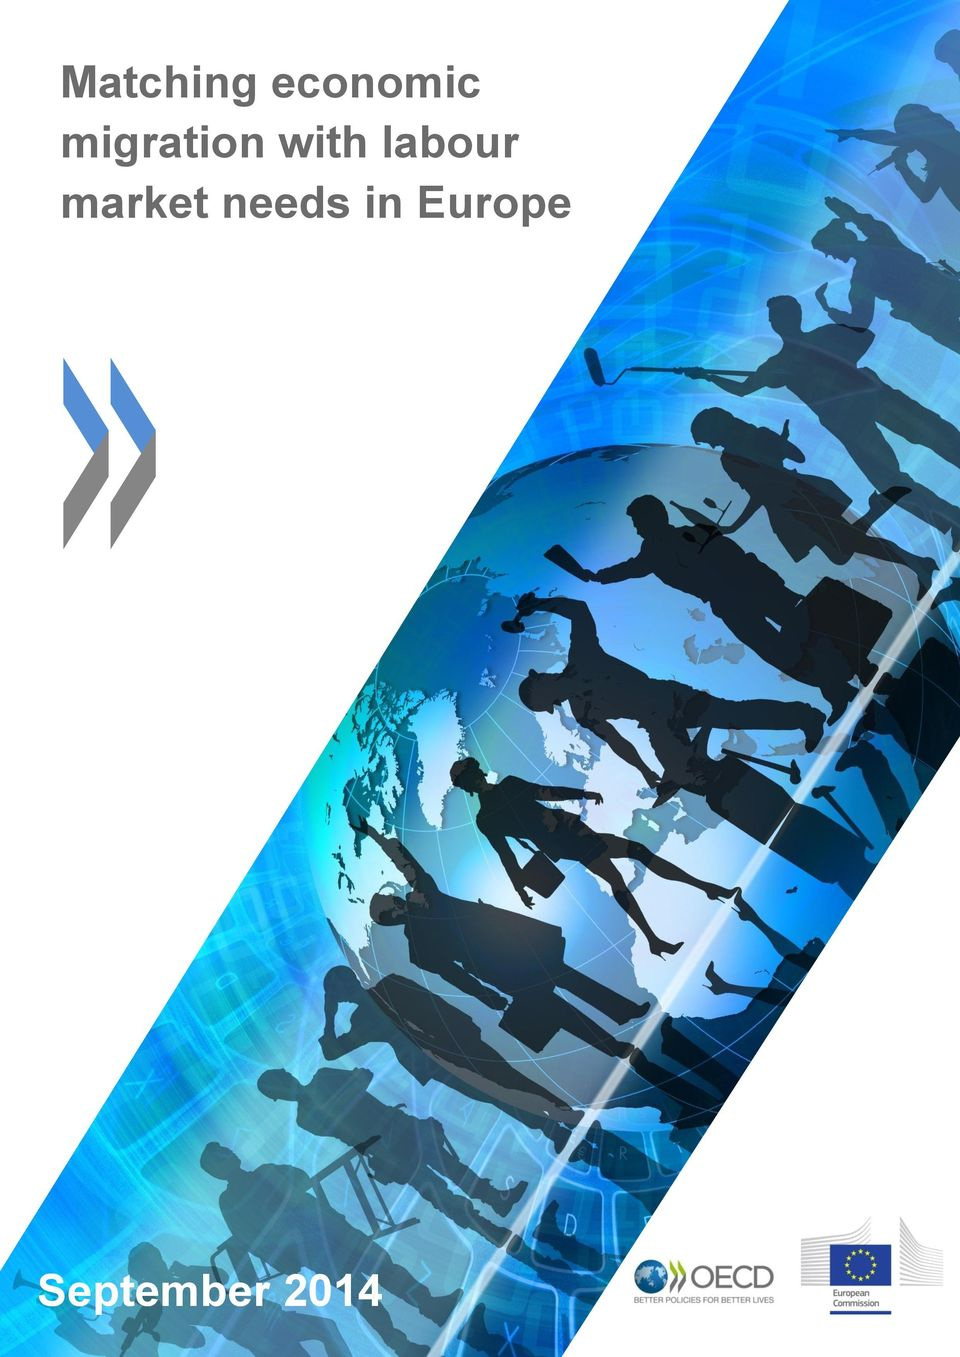 MIGRATION WITH LABOUR MARKET NEEDS IN EUROPE